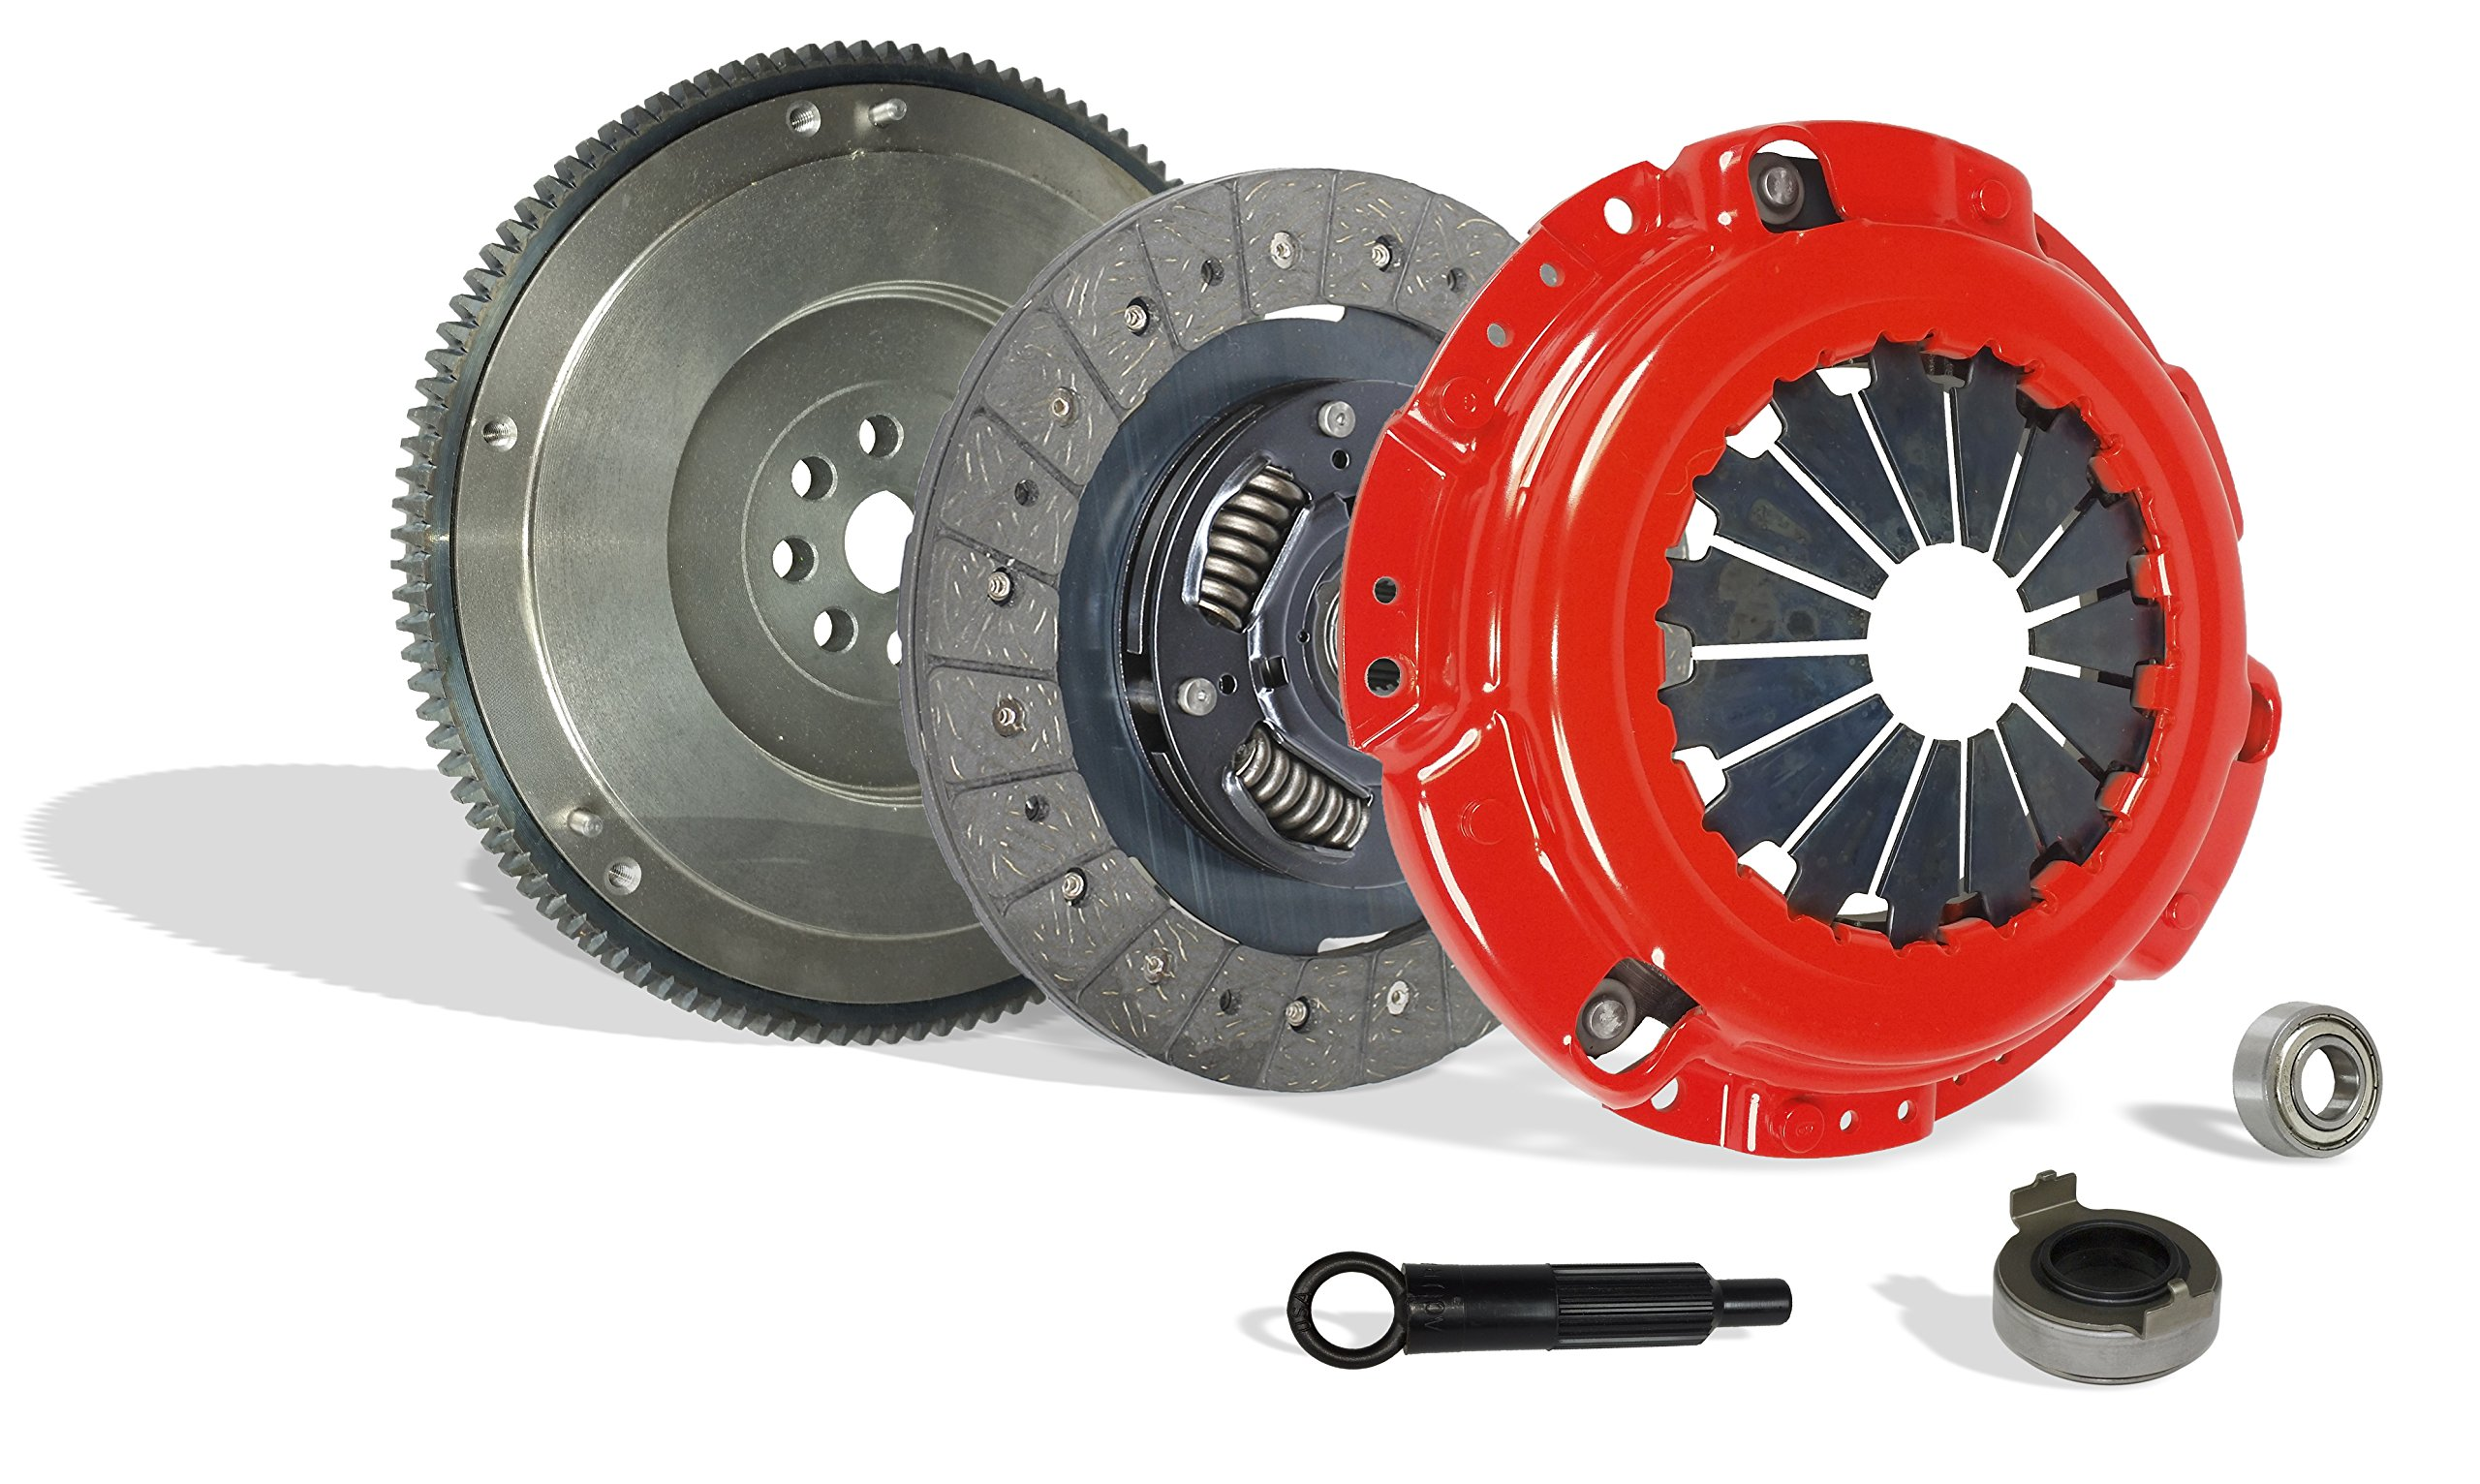 EFT RACING STAGE 3 CLUTCH KIT for 1990-2002 HONDA ACCORD F22 F23